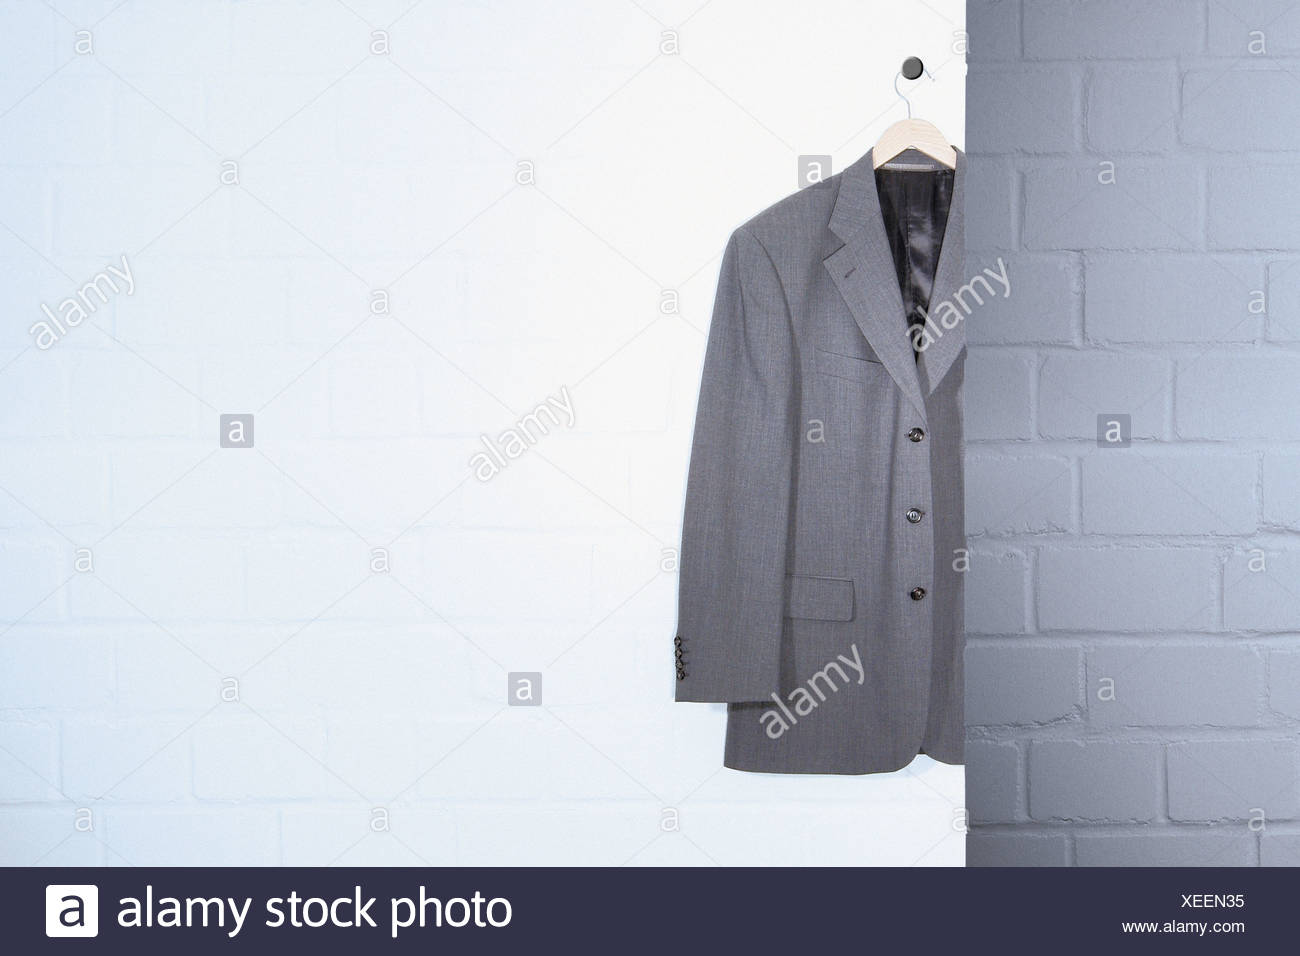 Hanging Suit Jacket   Stock Image